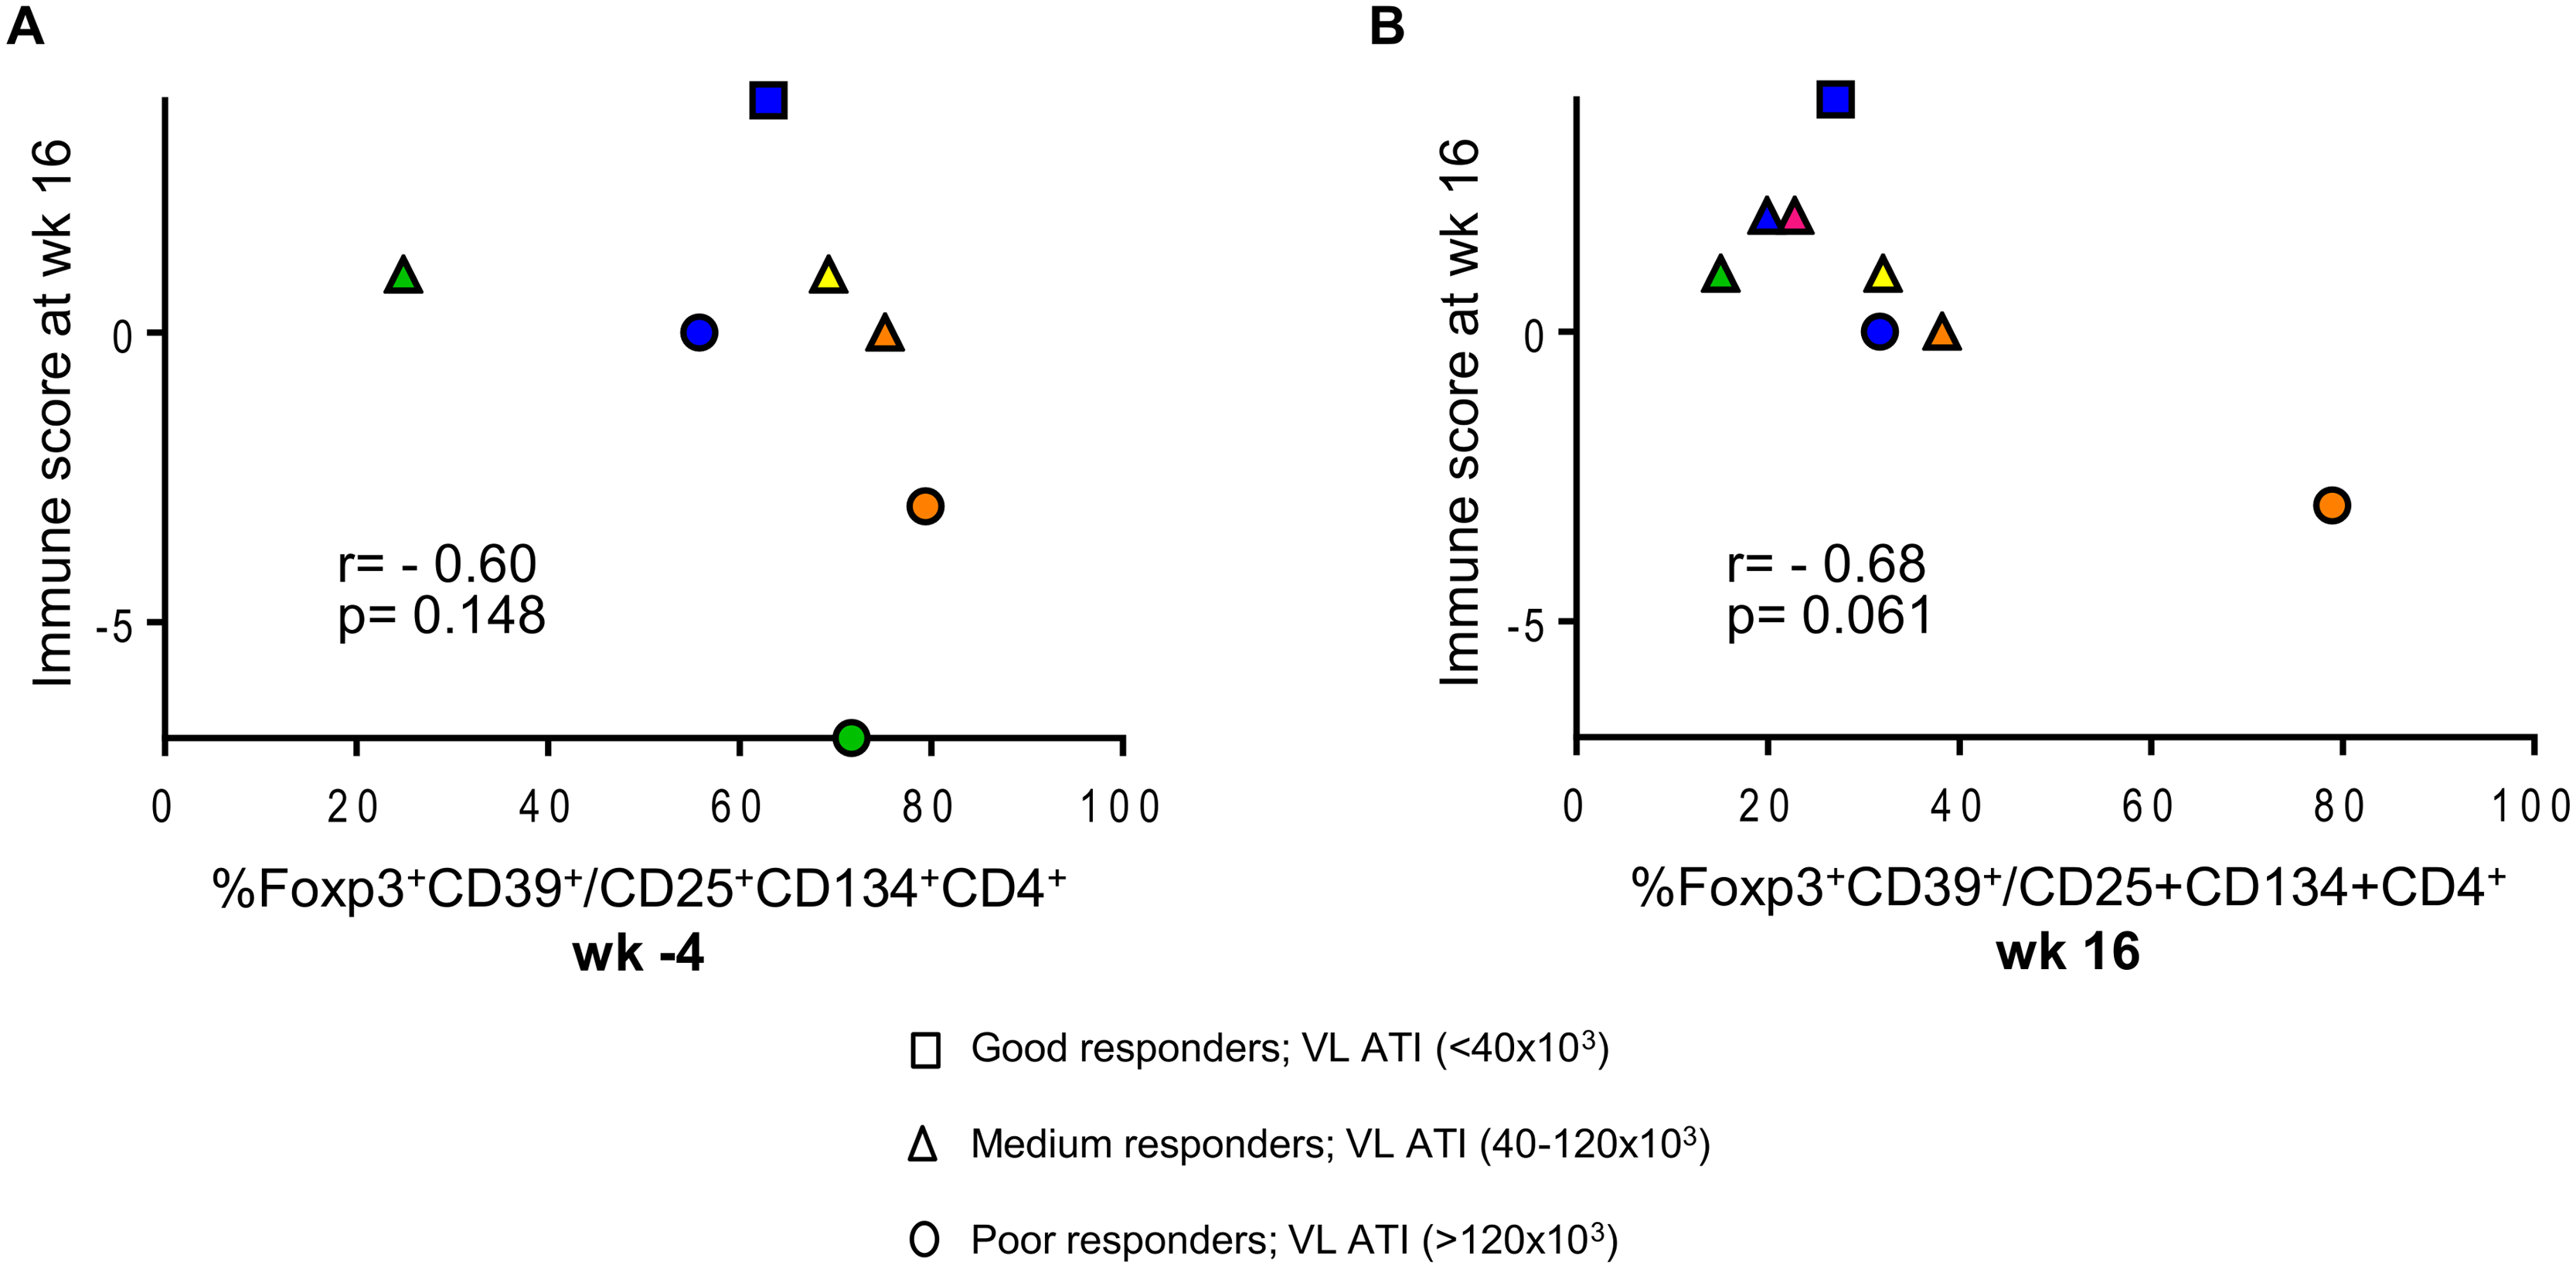 Patients with lower HIV-specific Tregs respond better to vaccination.